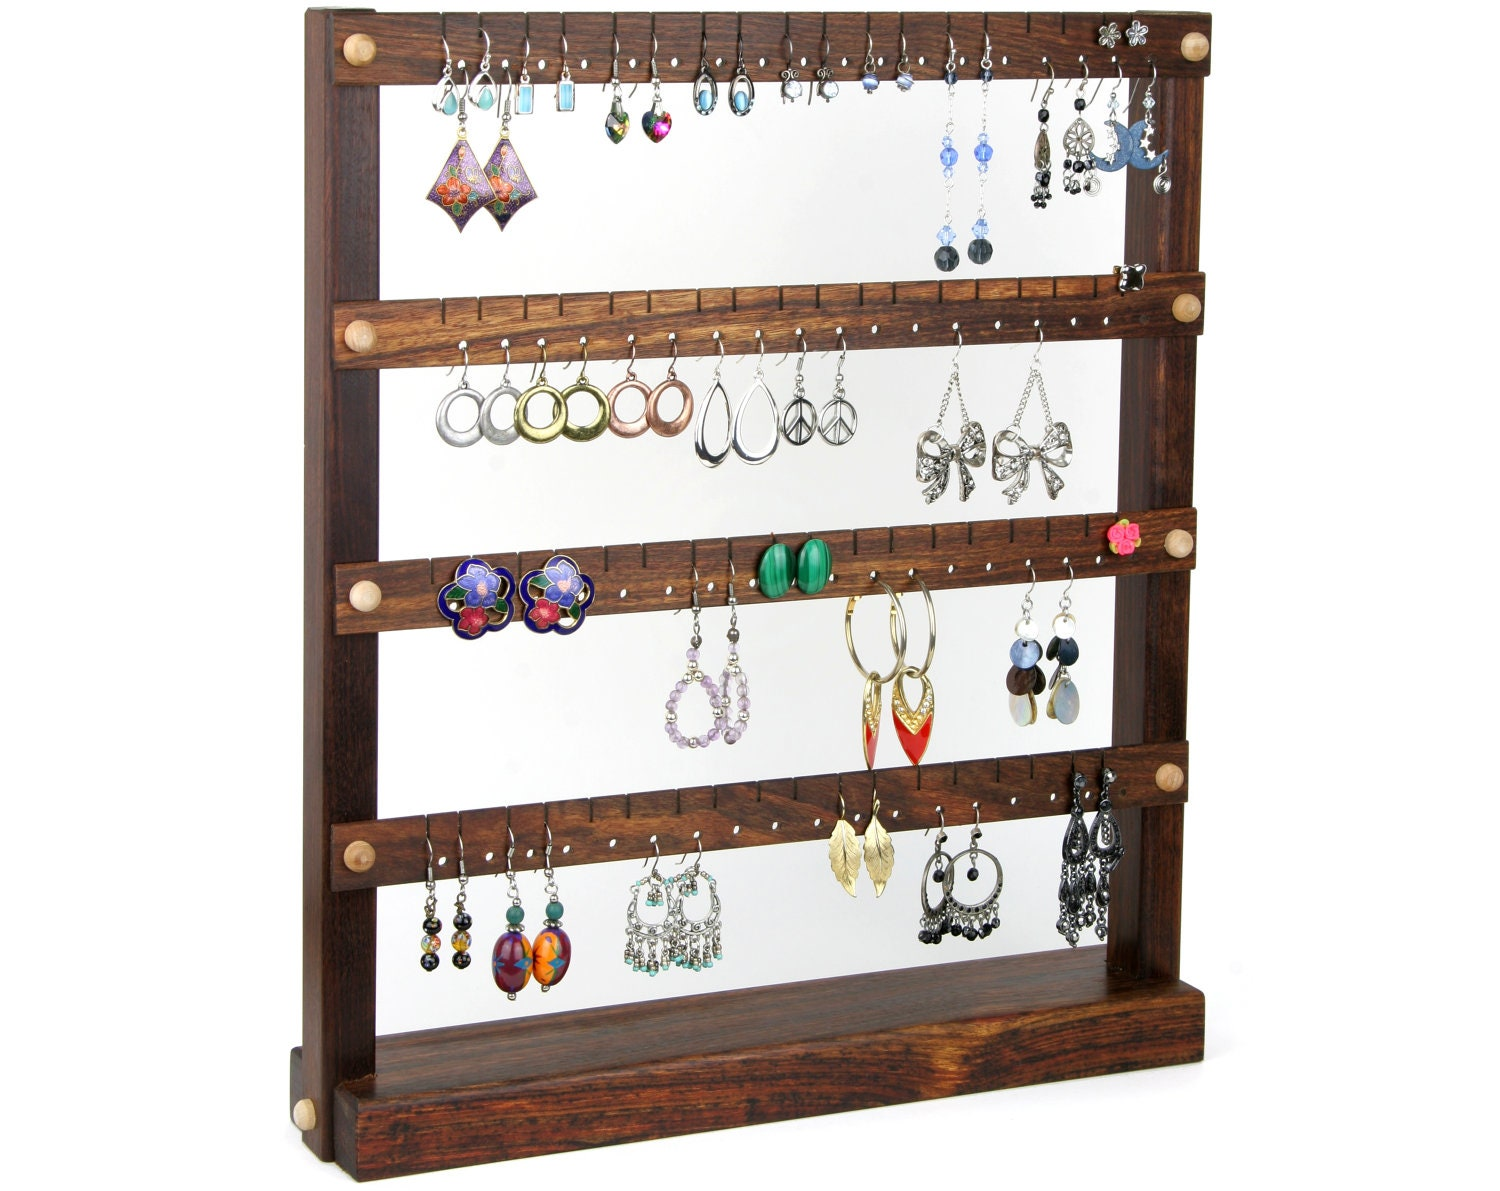 caribbean rosewood jewelry holder earring display stand. Black Bedroom Furniture Sets. Home Design Ideas